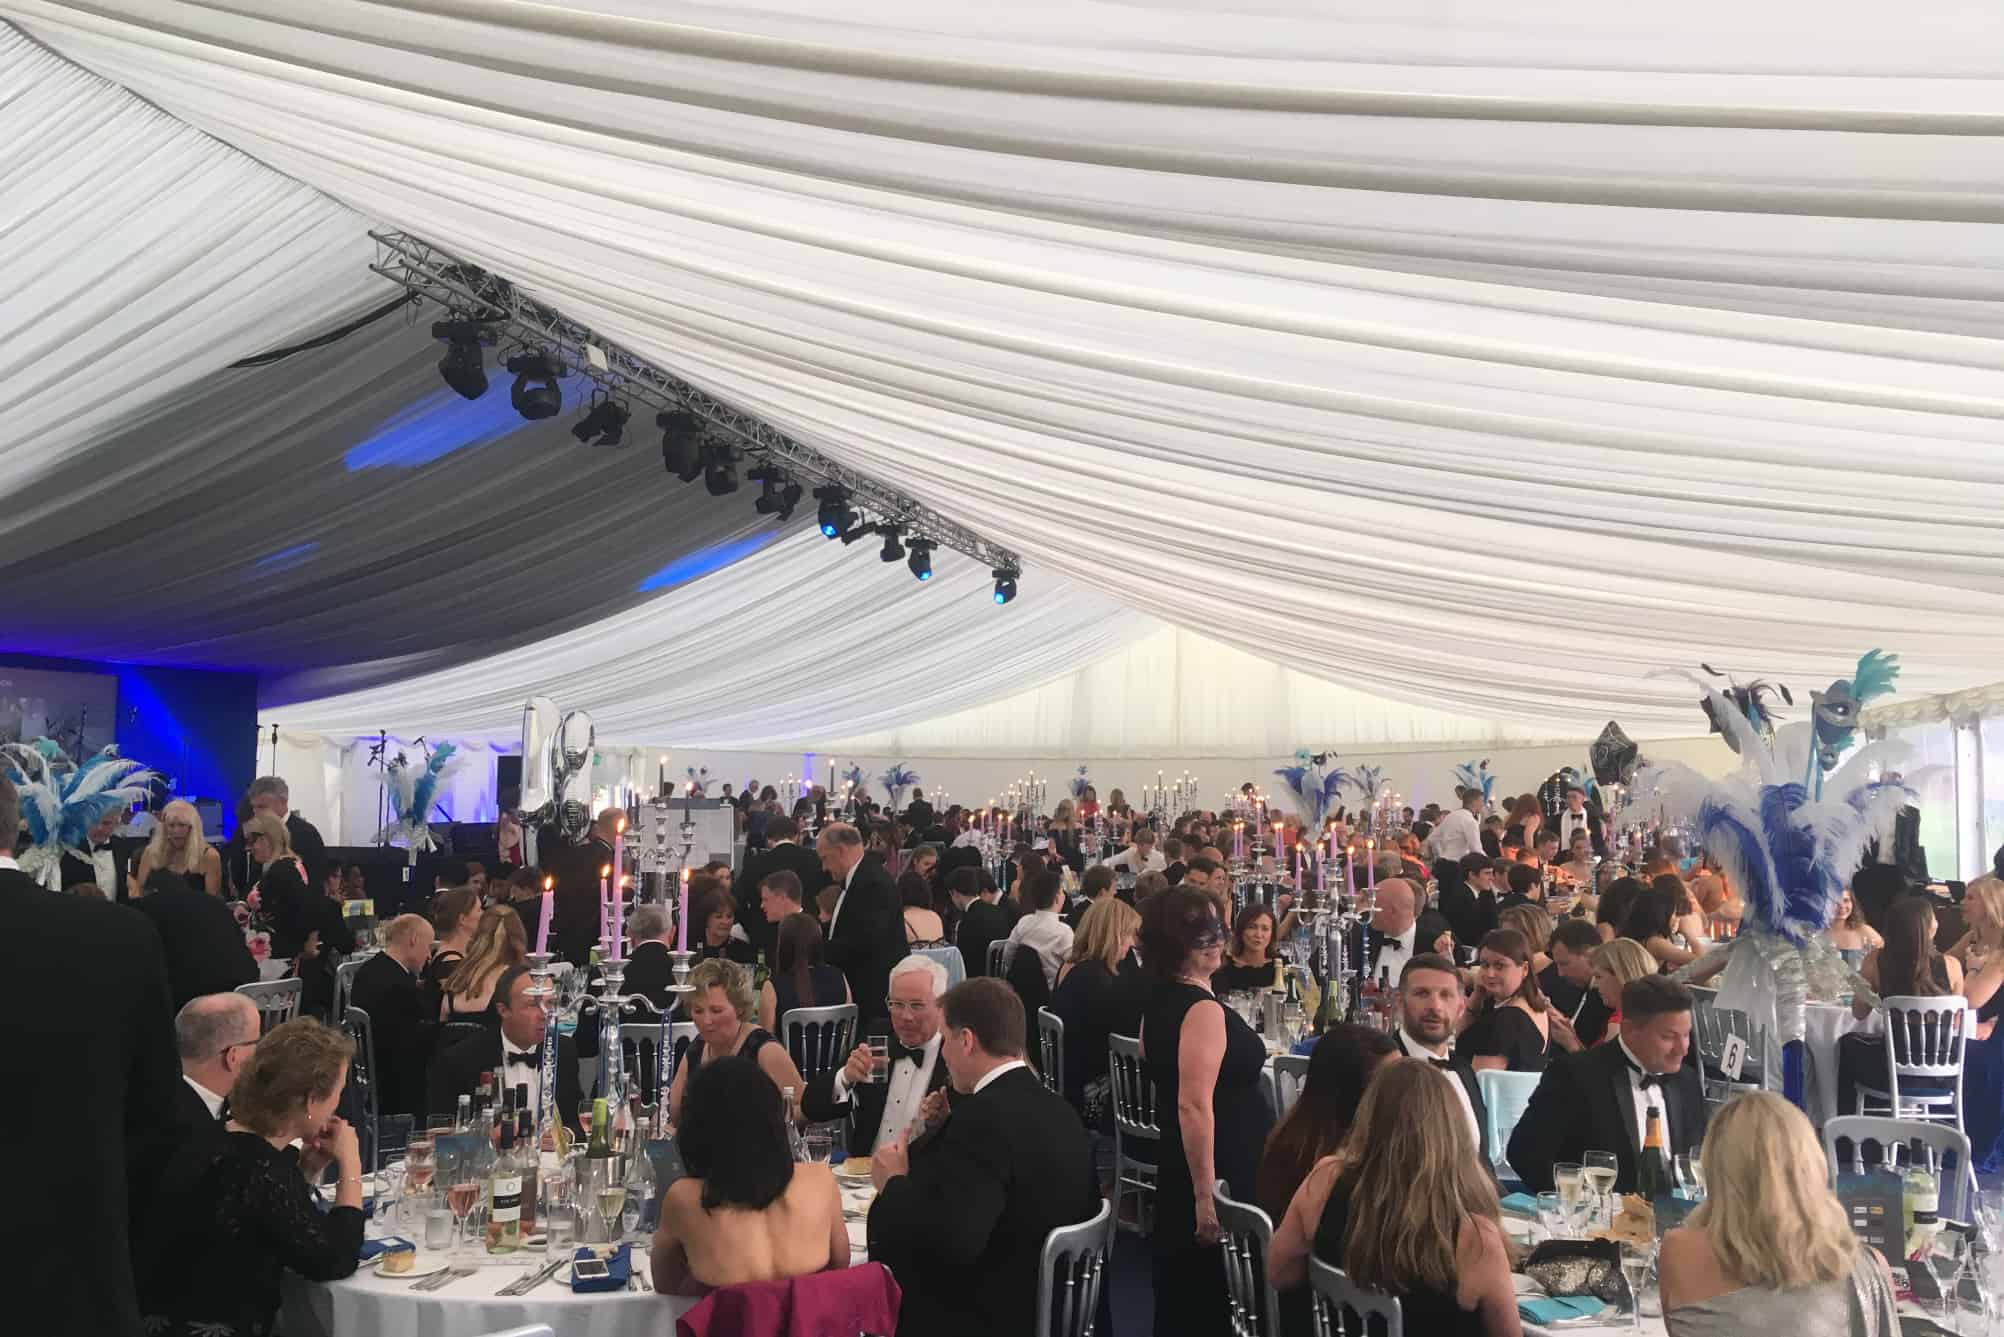 Masquerade Ball in Marquee